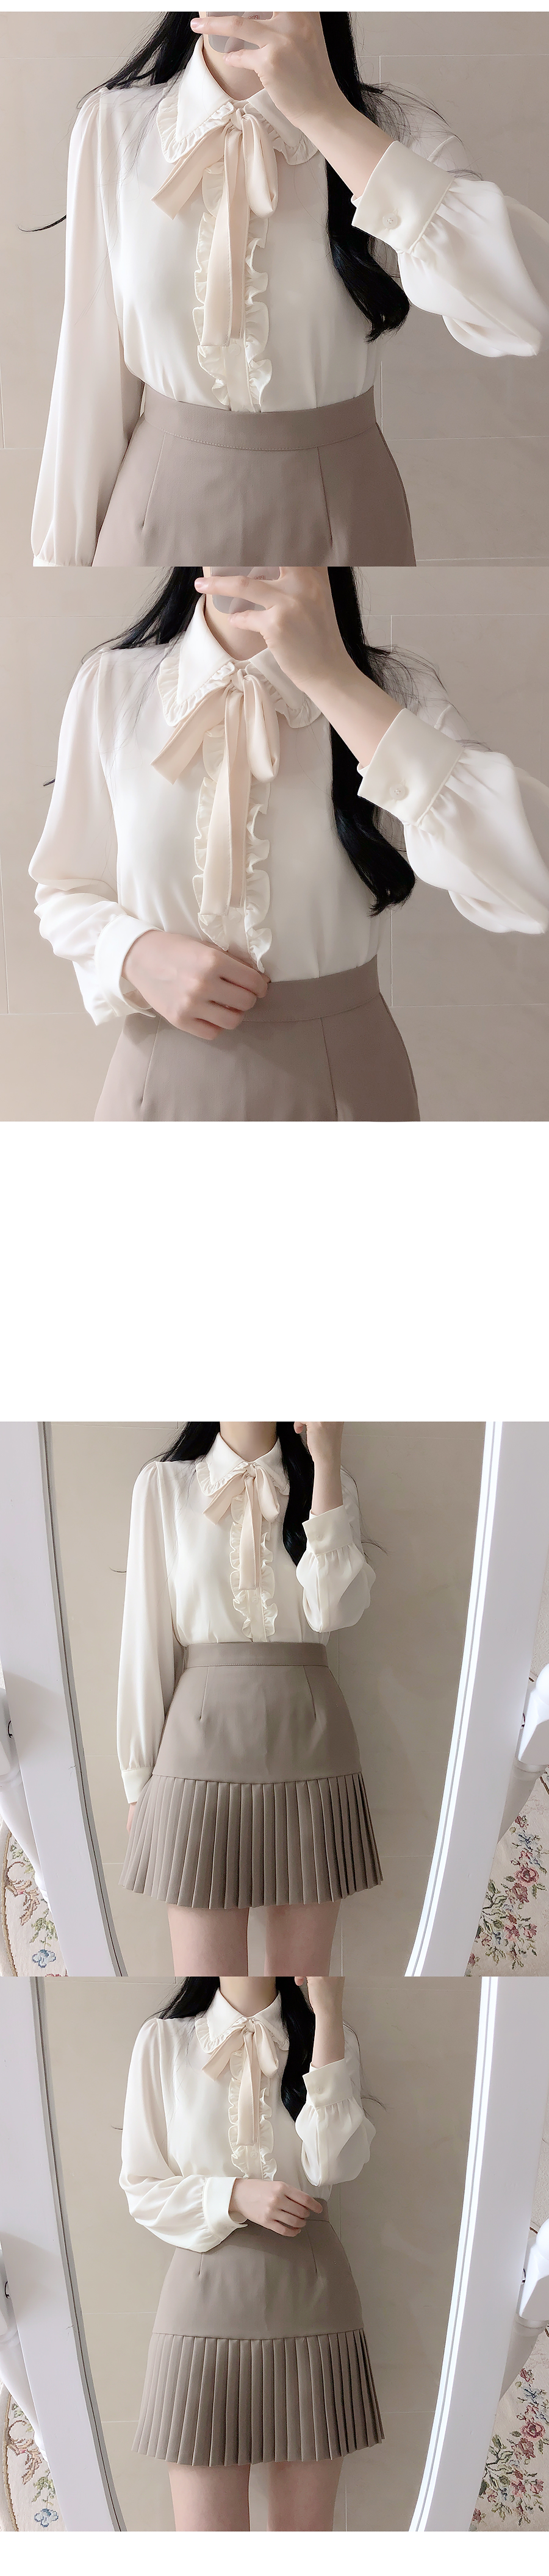 ♥ Shuanna frill tie blouse